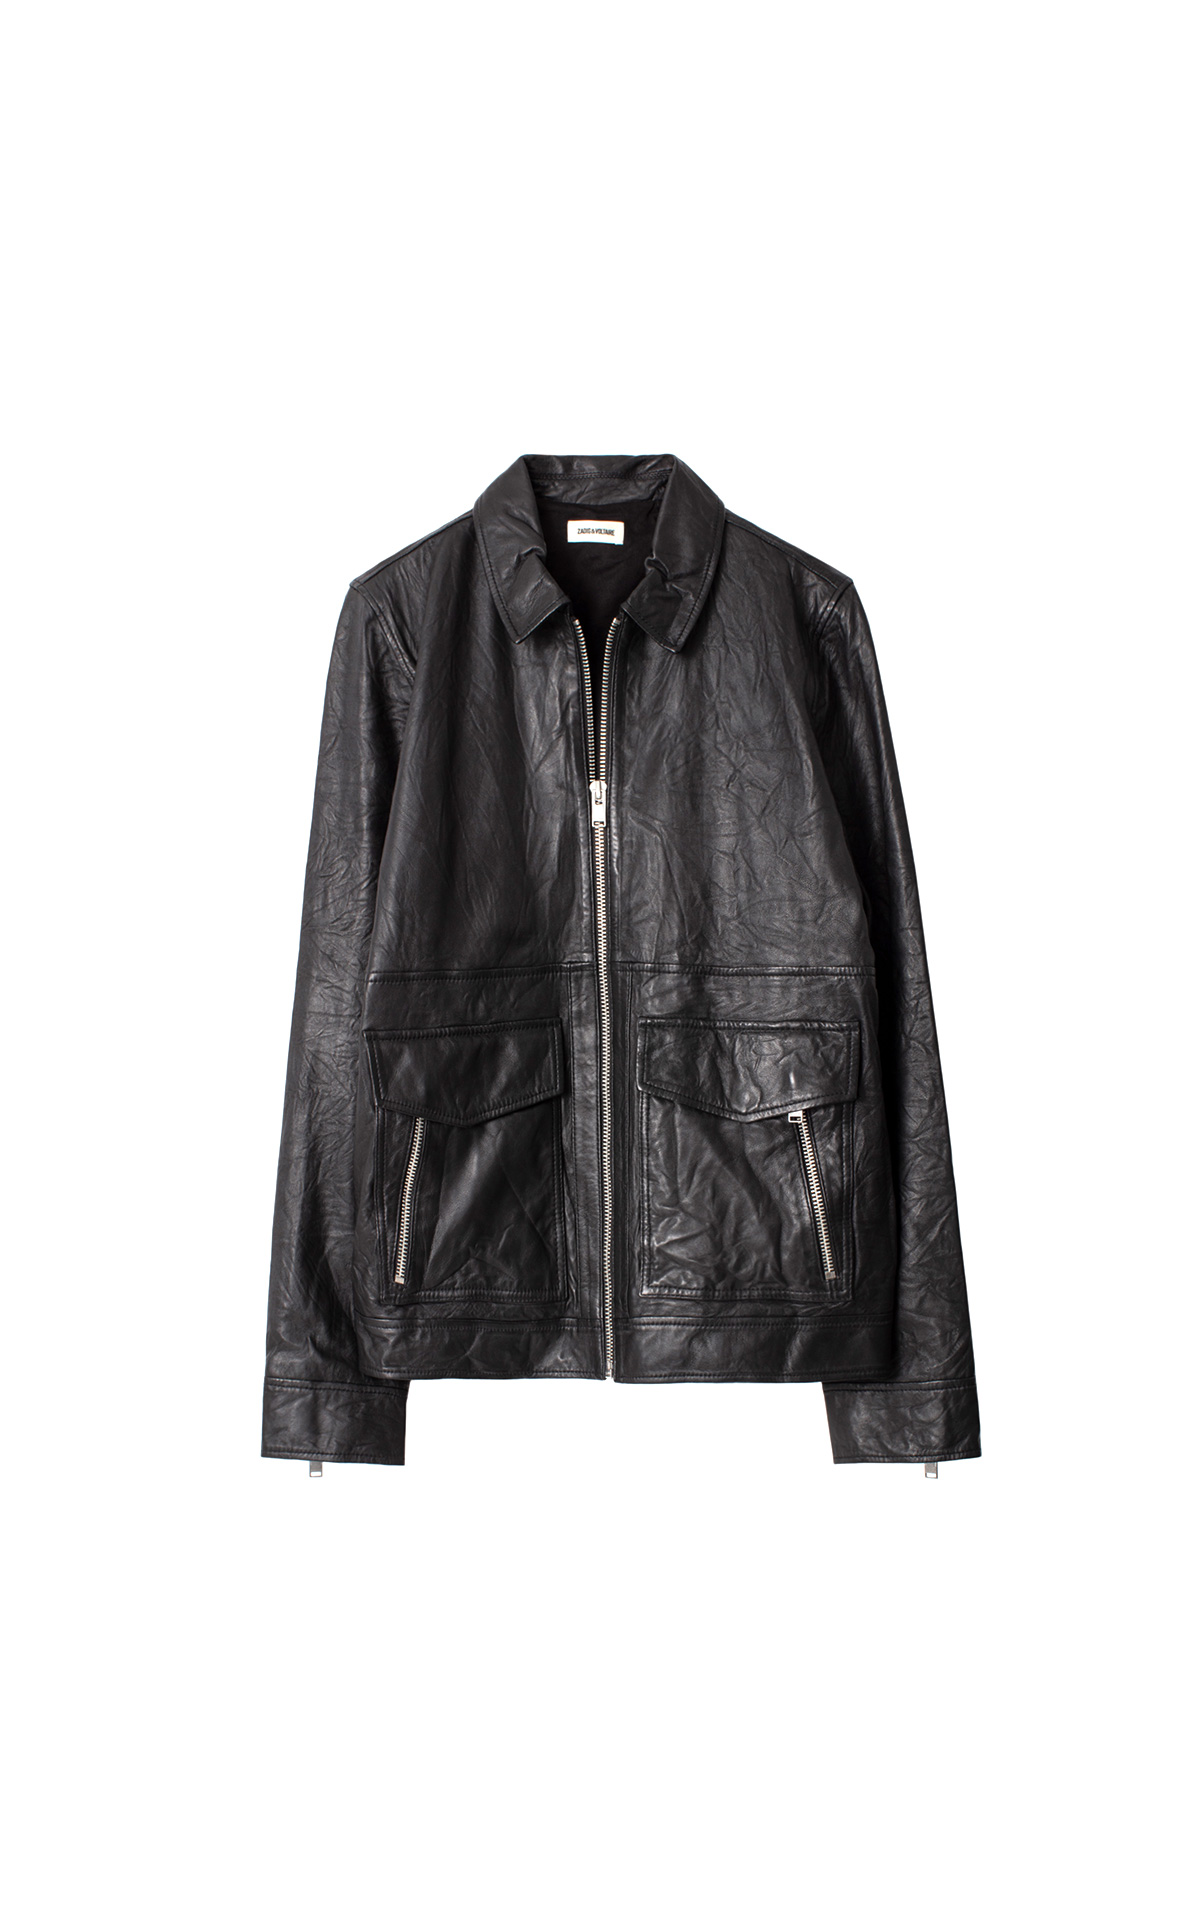 la vallée village zadig and voltaire Bobby crinkle leather jacket